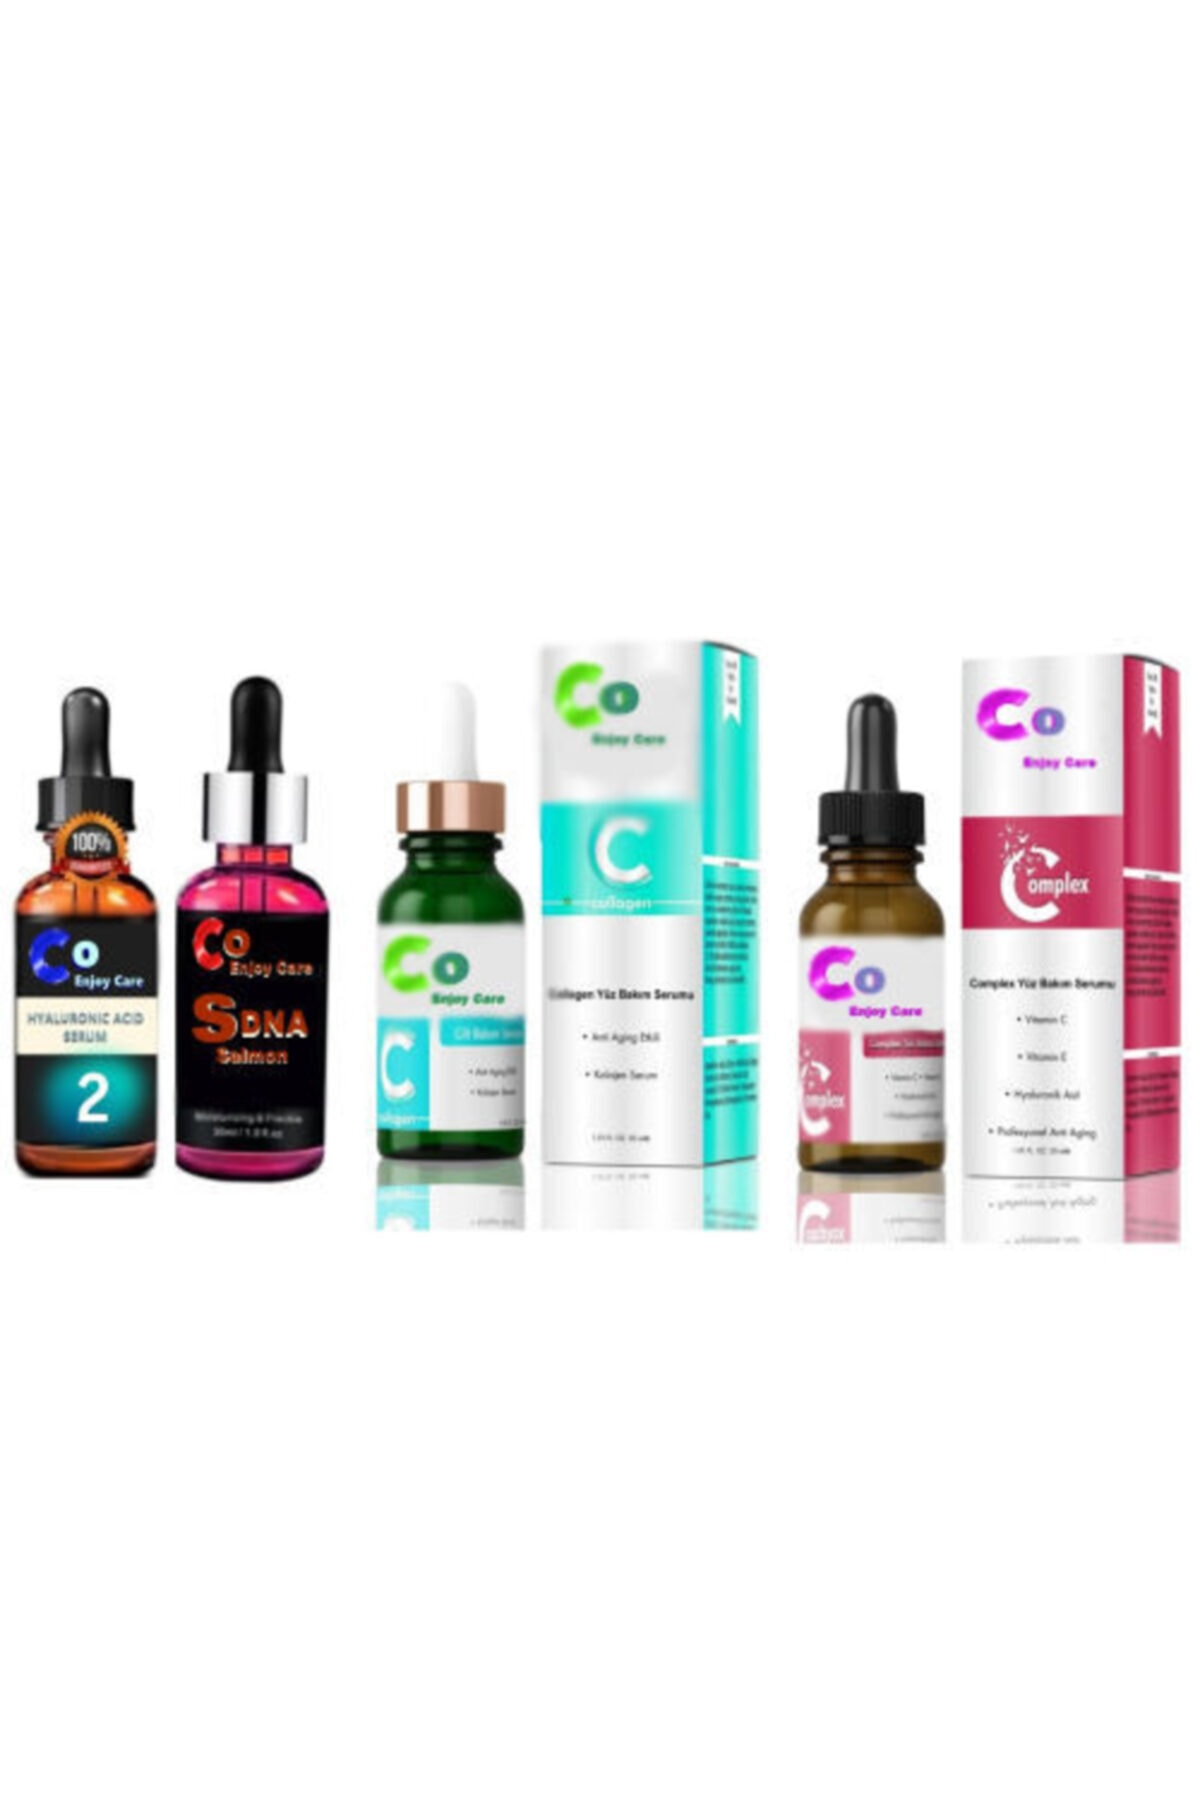 co enjoy care Complex C Vitamini+hyaluronik Asit+somon Dna+kolajen 4'lü Serum Set 1